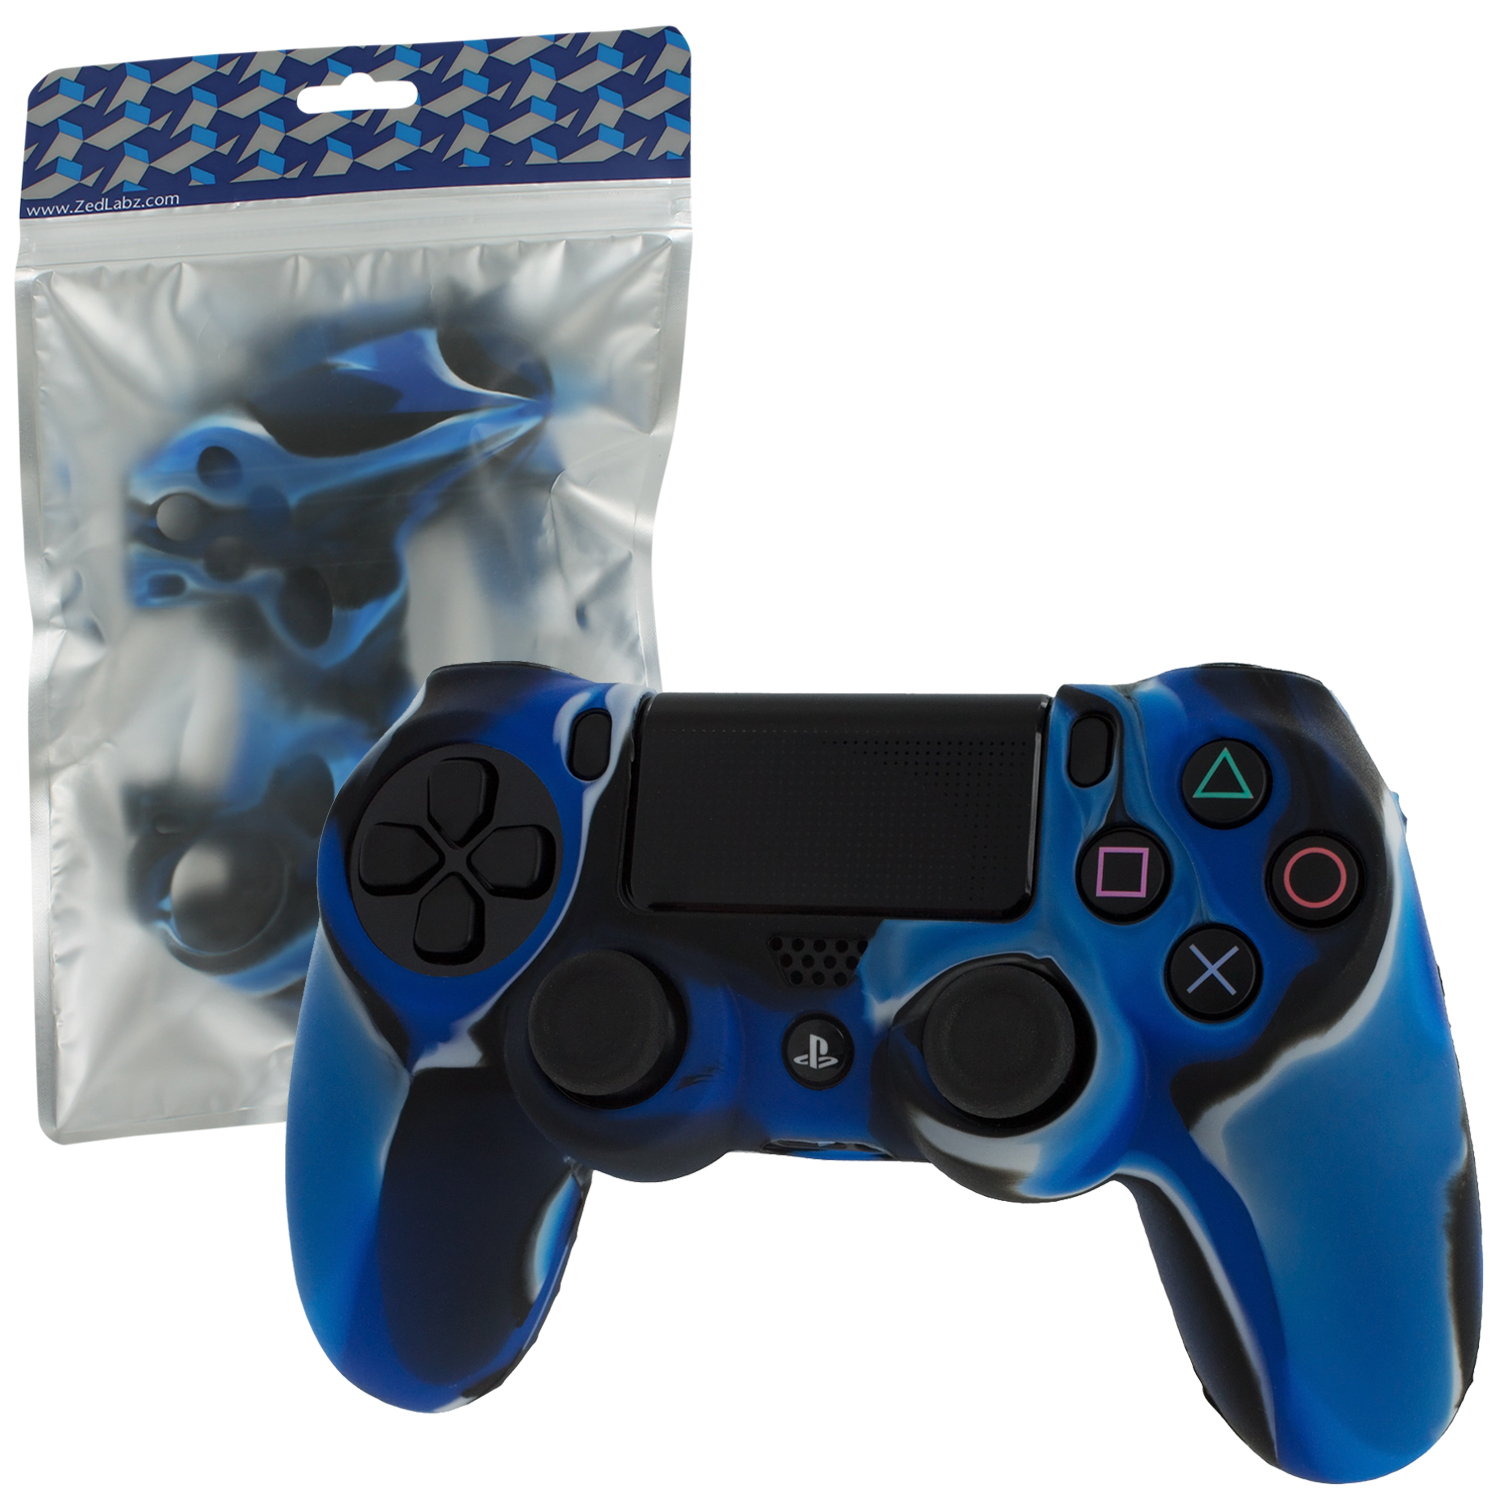 Zedlabz Soft Silicone Rubber Skin Grip Cover For Sony Ps4 Controller With Ribbed Handle - Camo Blue